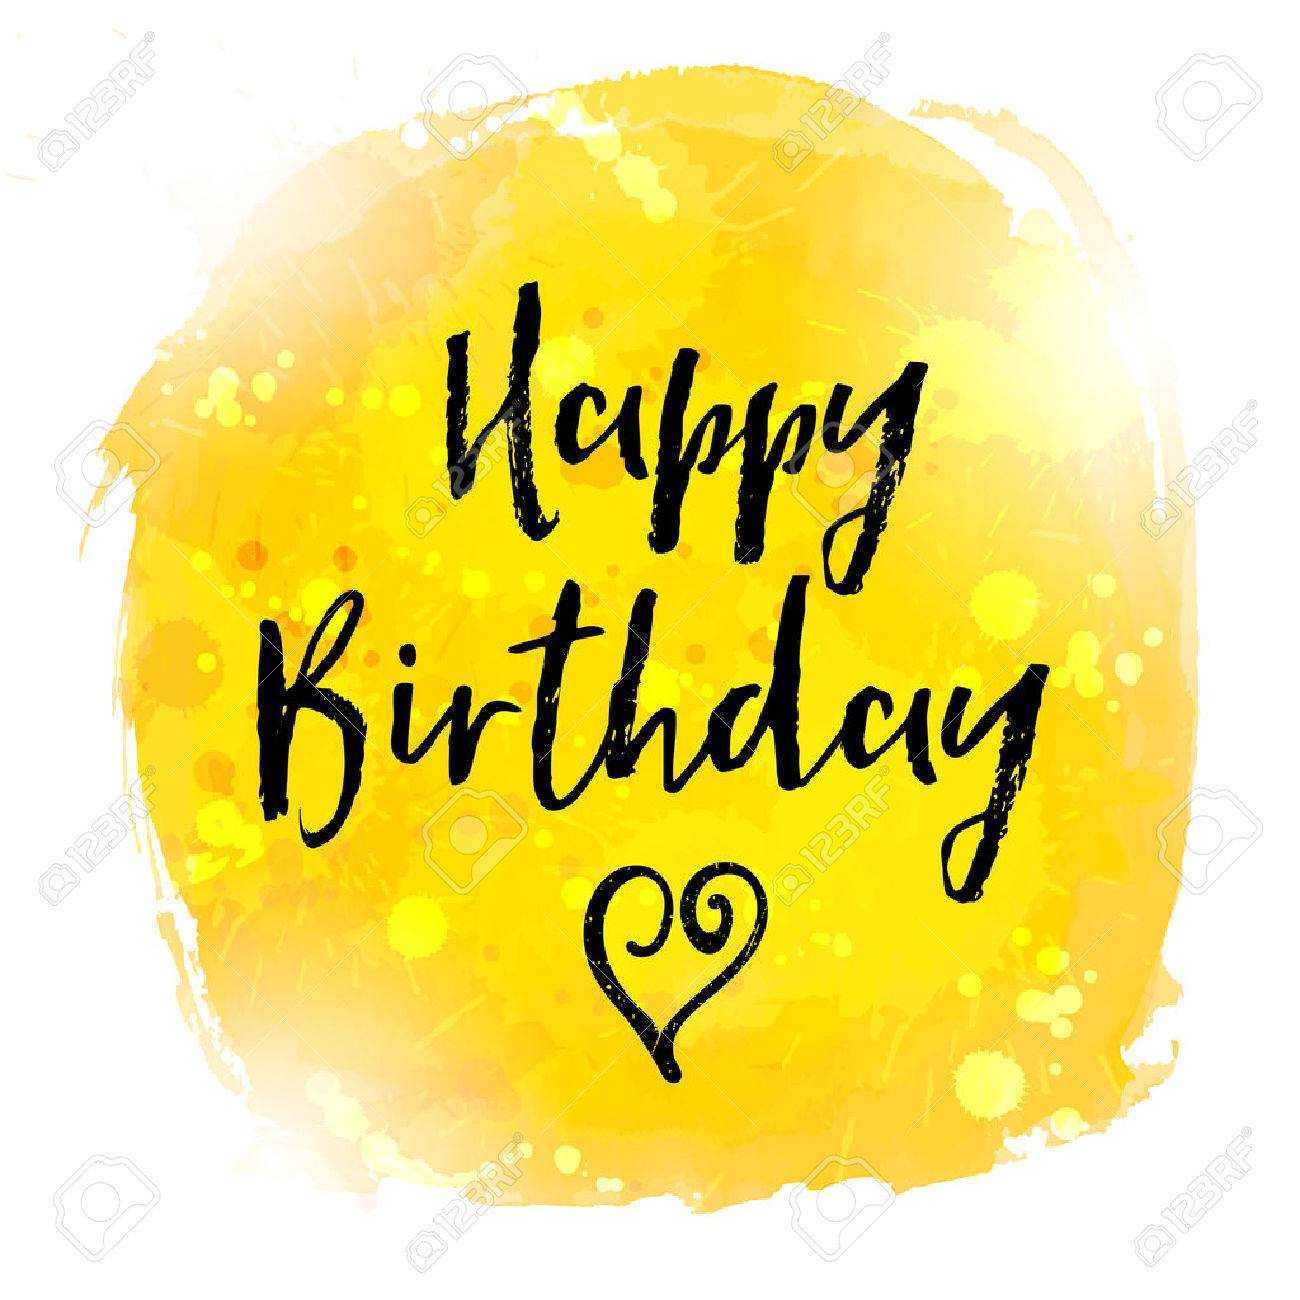 Happy Birthday hand paint watercolor brushed greeting card. Vector illustration. - 55086953